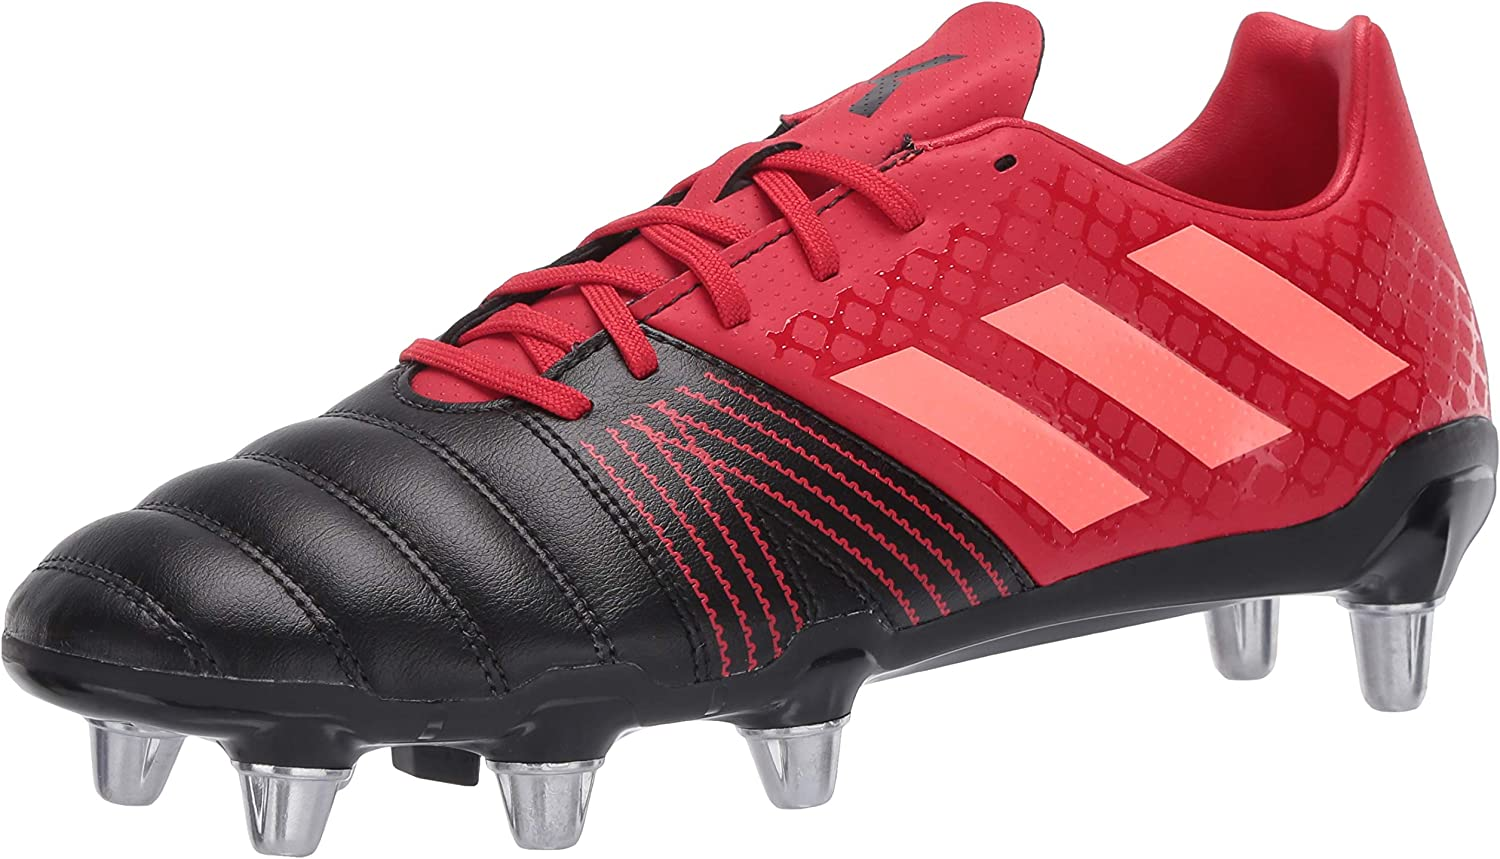 adidas Men's Kakari Sg Boots Rugby Shoe